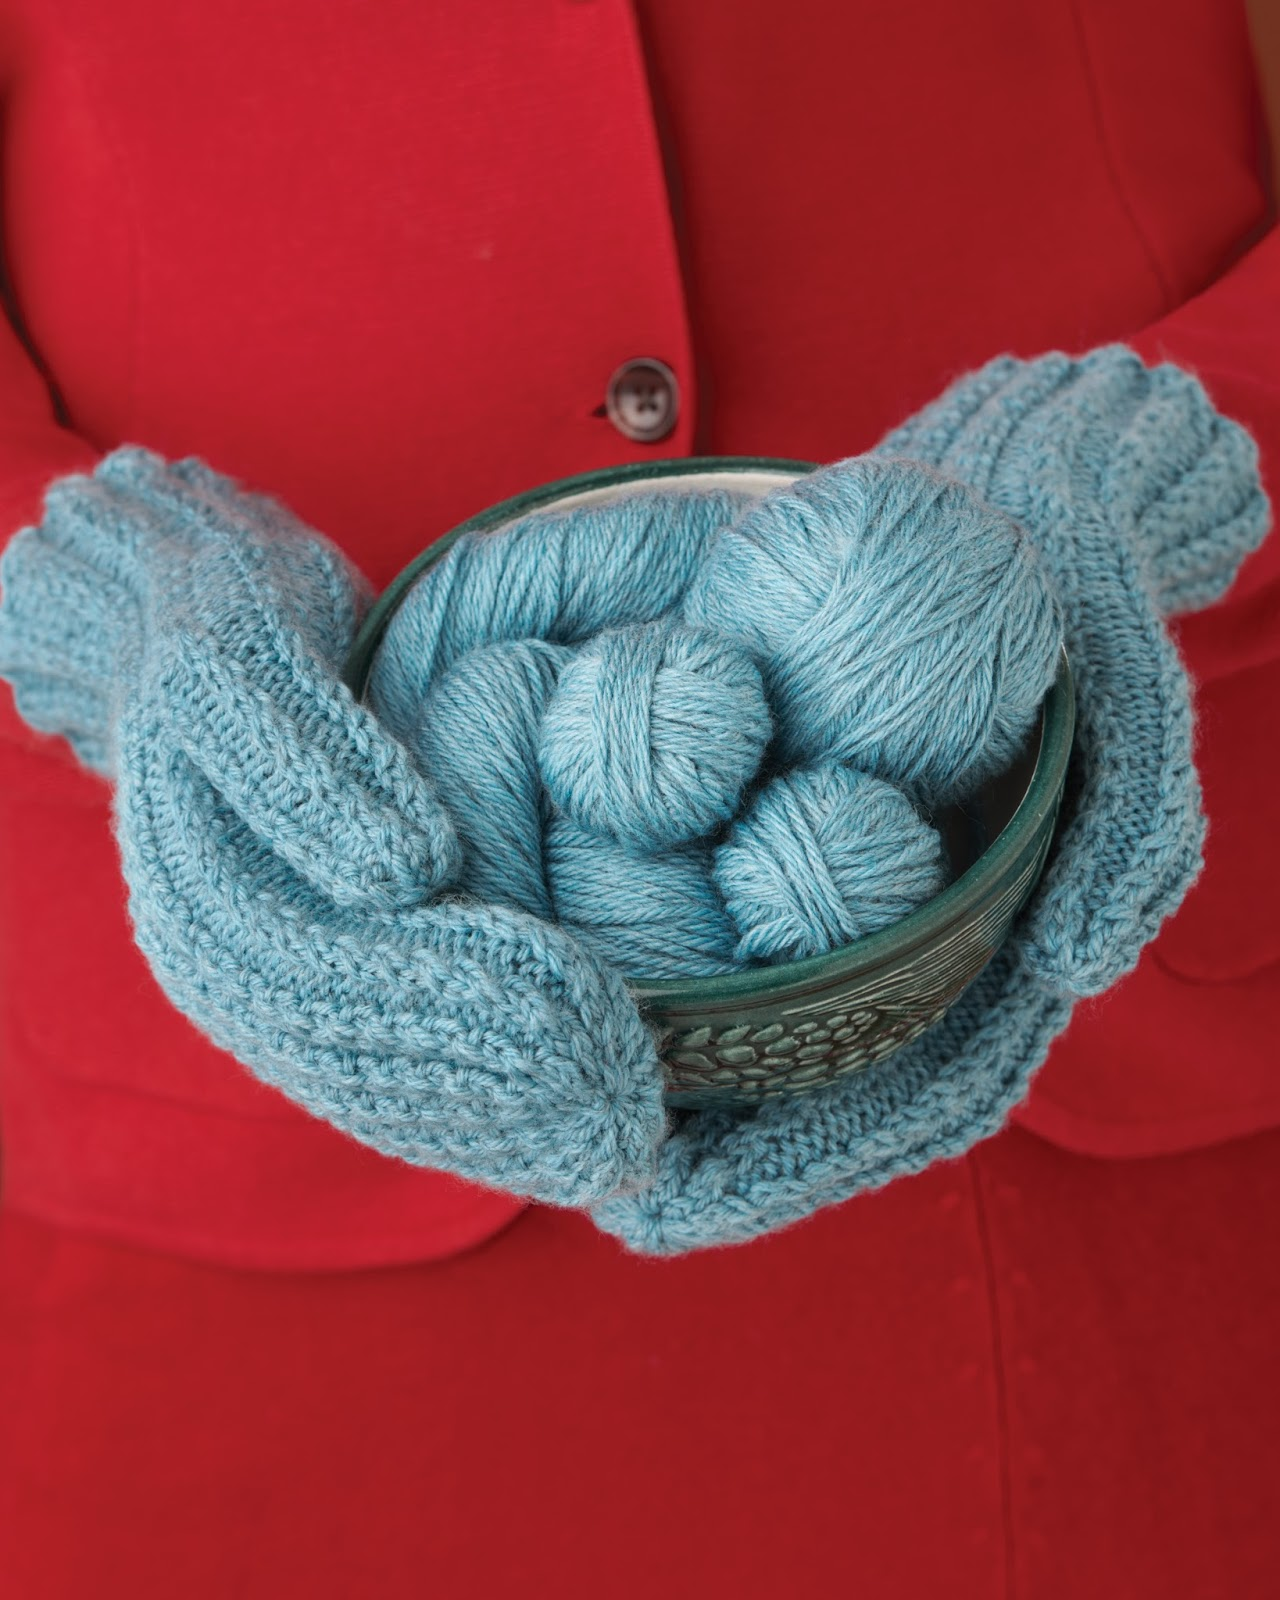 Cascade Yarns Blog: Close Knit - Wyckoff, NJ - Twisted Stitch Mittens - Patte...